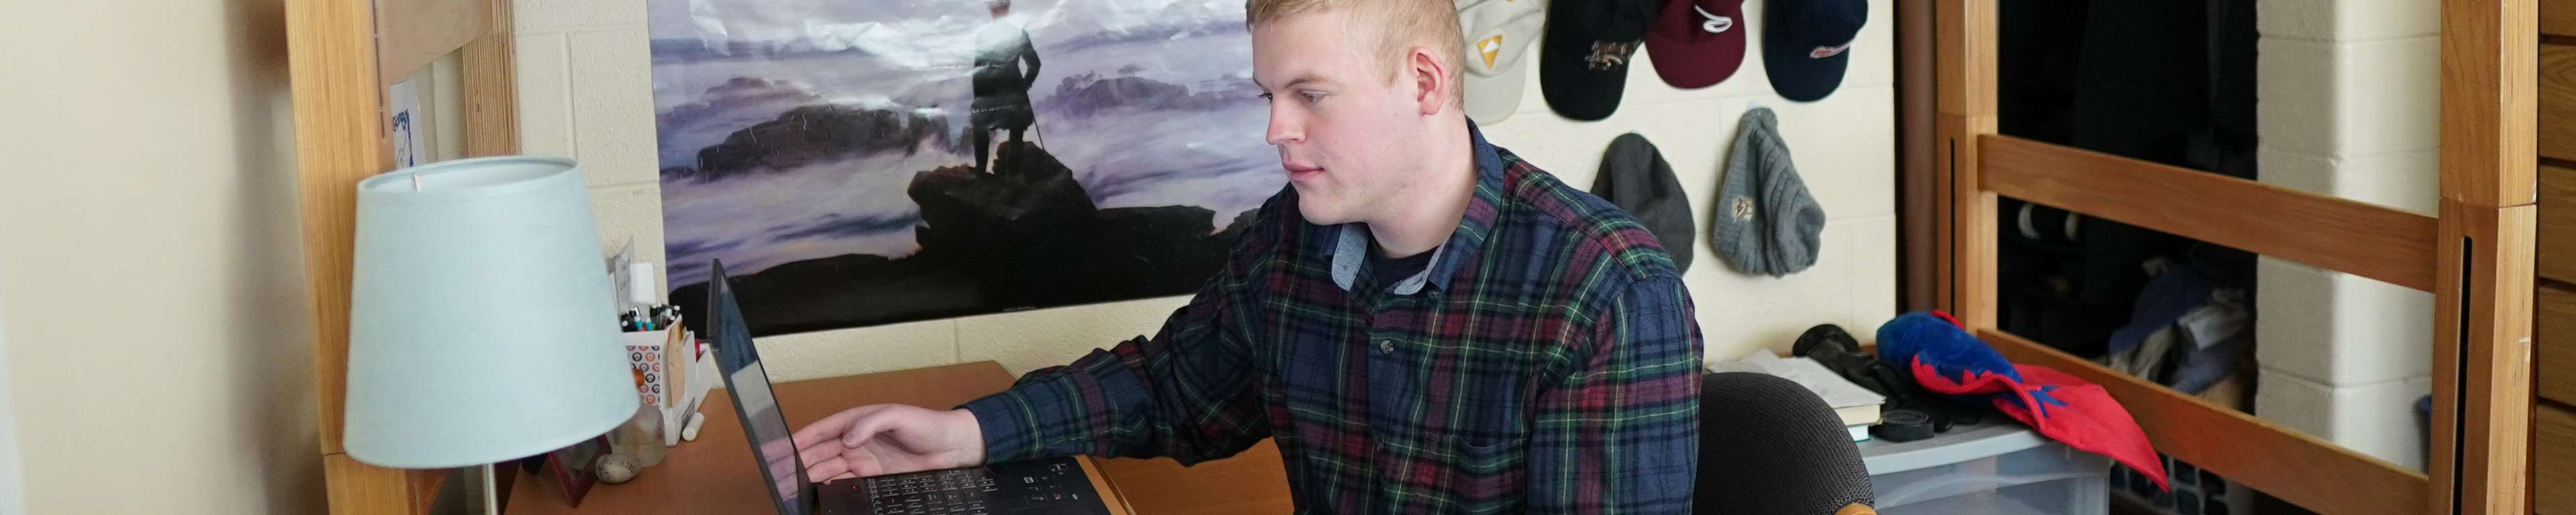 student with laptop at desk in their residence hall room